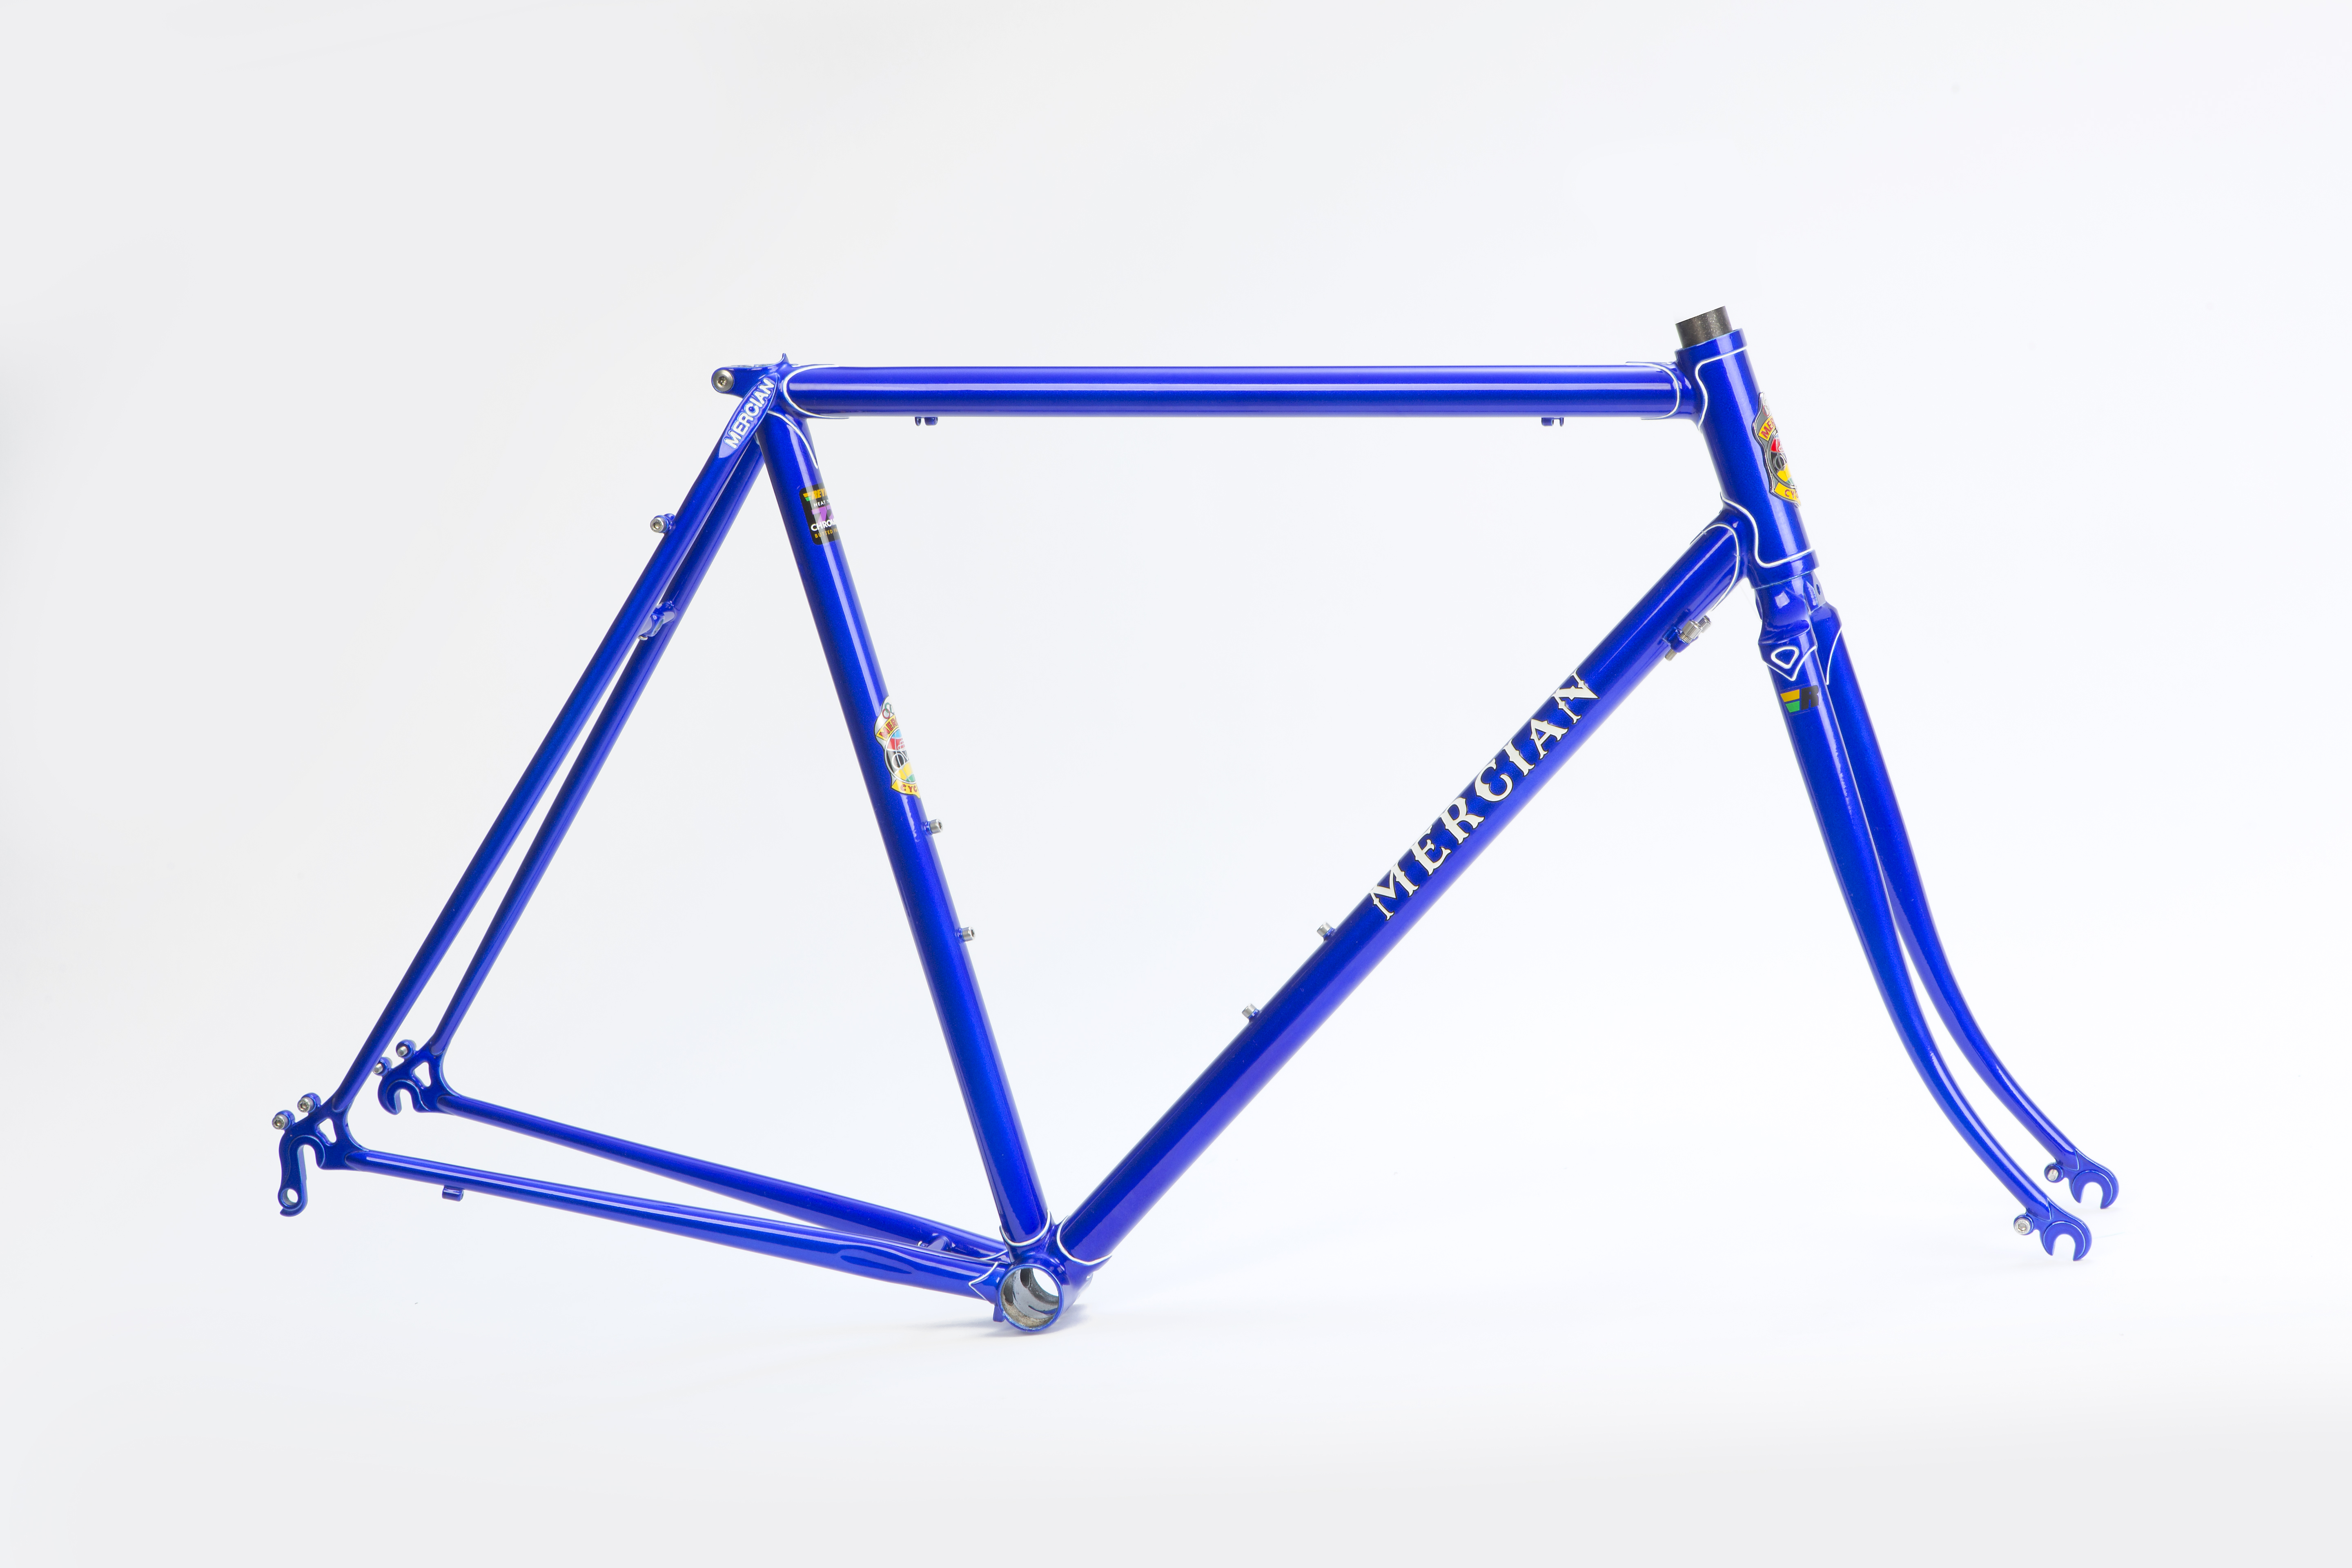 dating mercian frames Mercian cycles is an english custom bicycle manufacturer based in derby mercian frames were traditionally built using steel, originally reynolds 531.